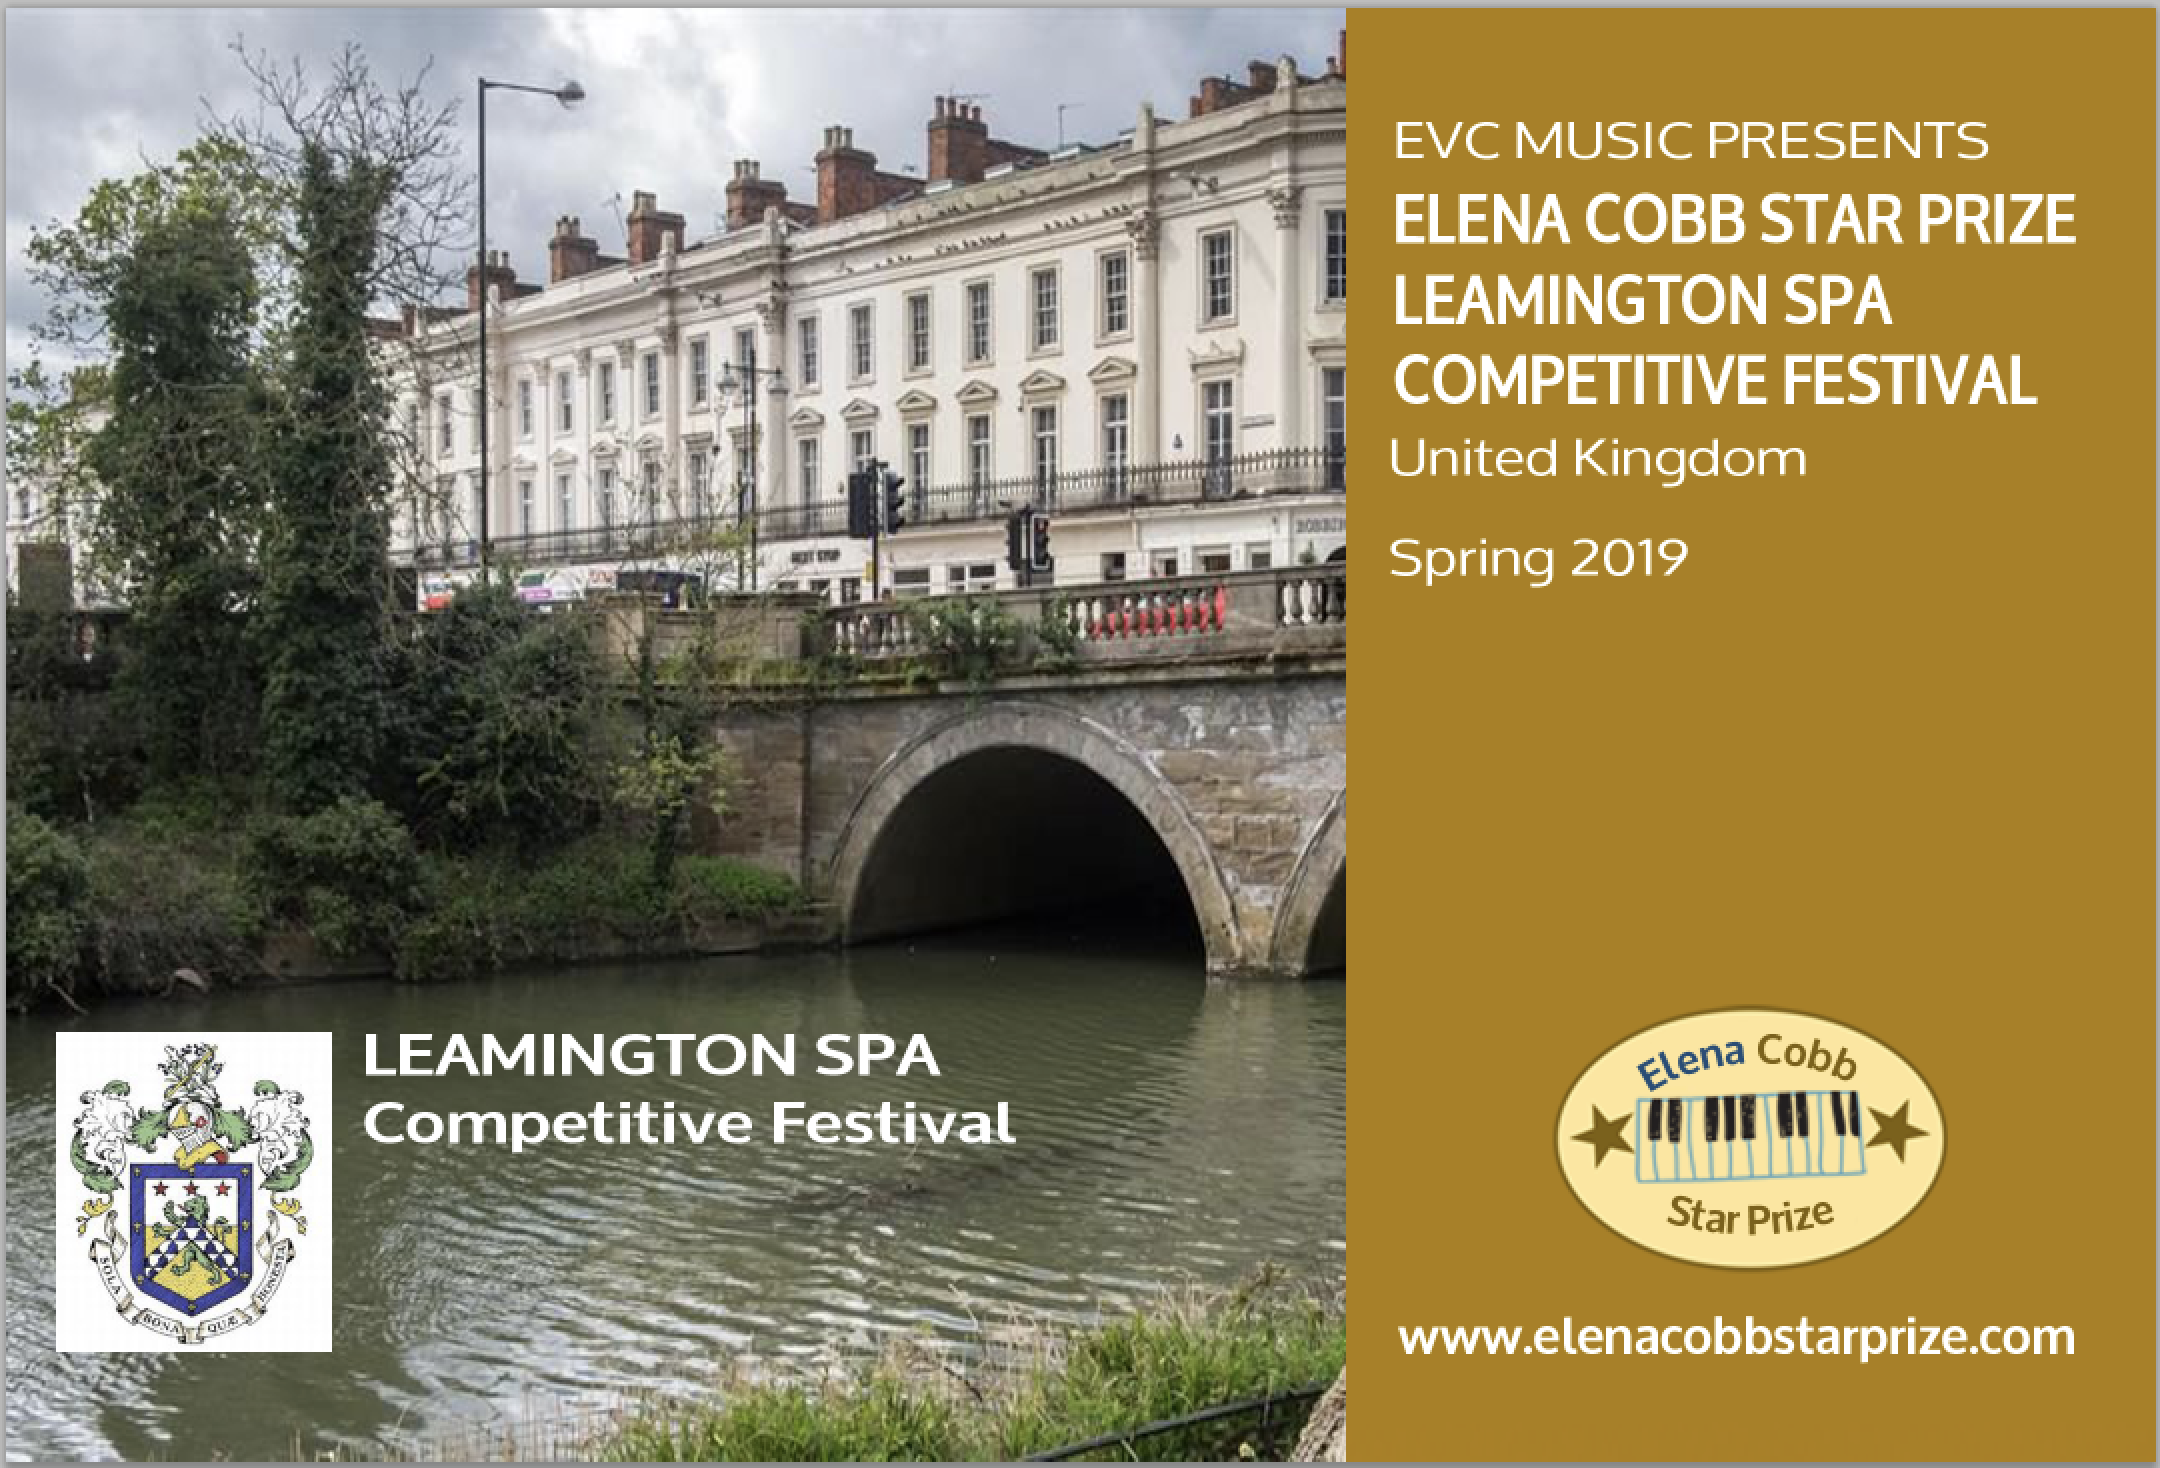 Leamington Spa Competitie Festival